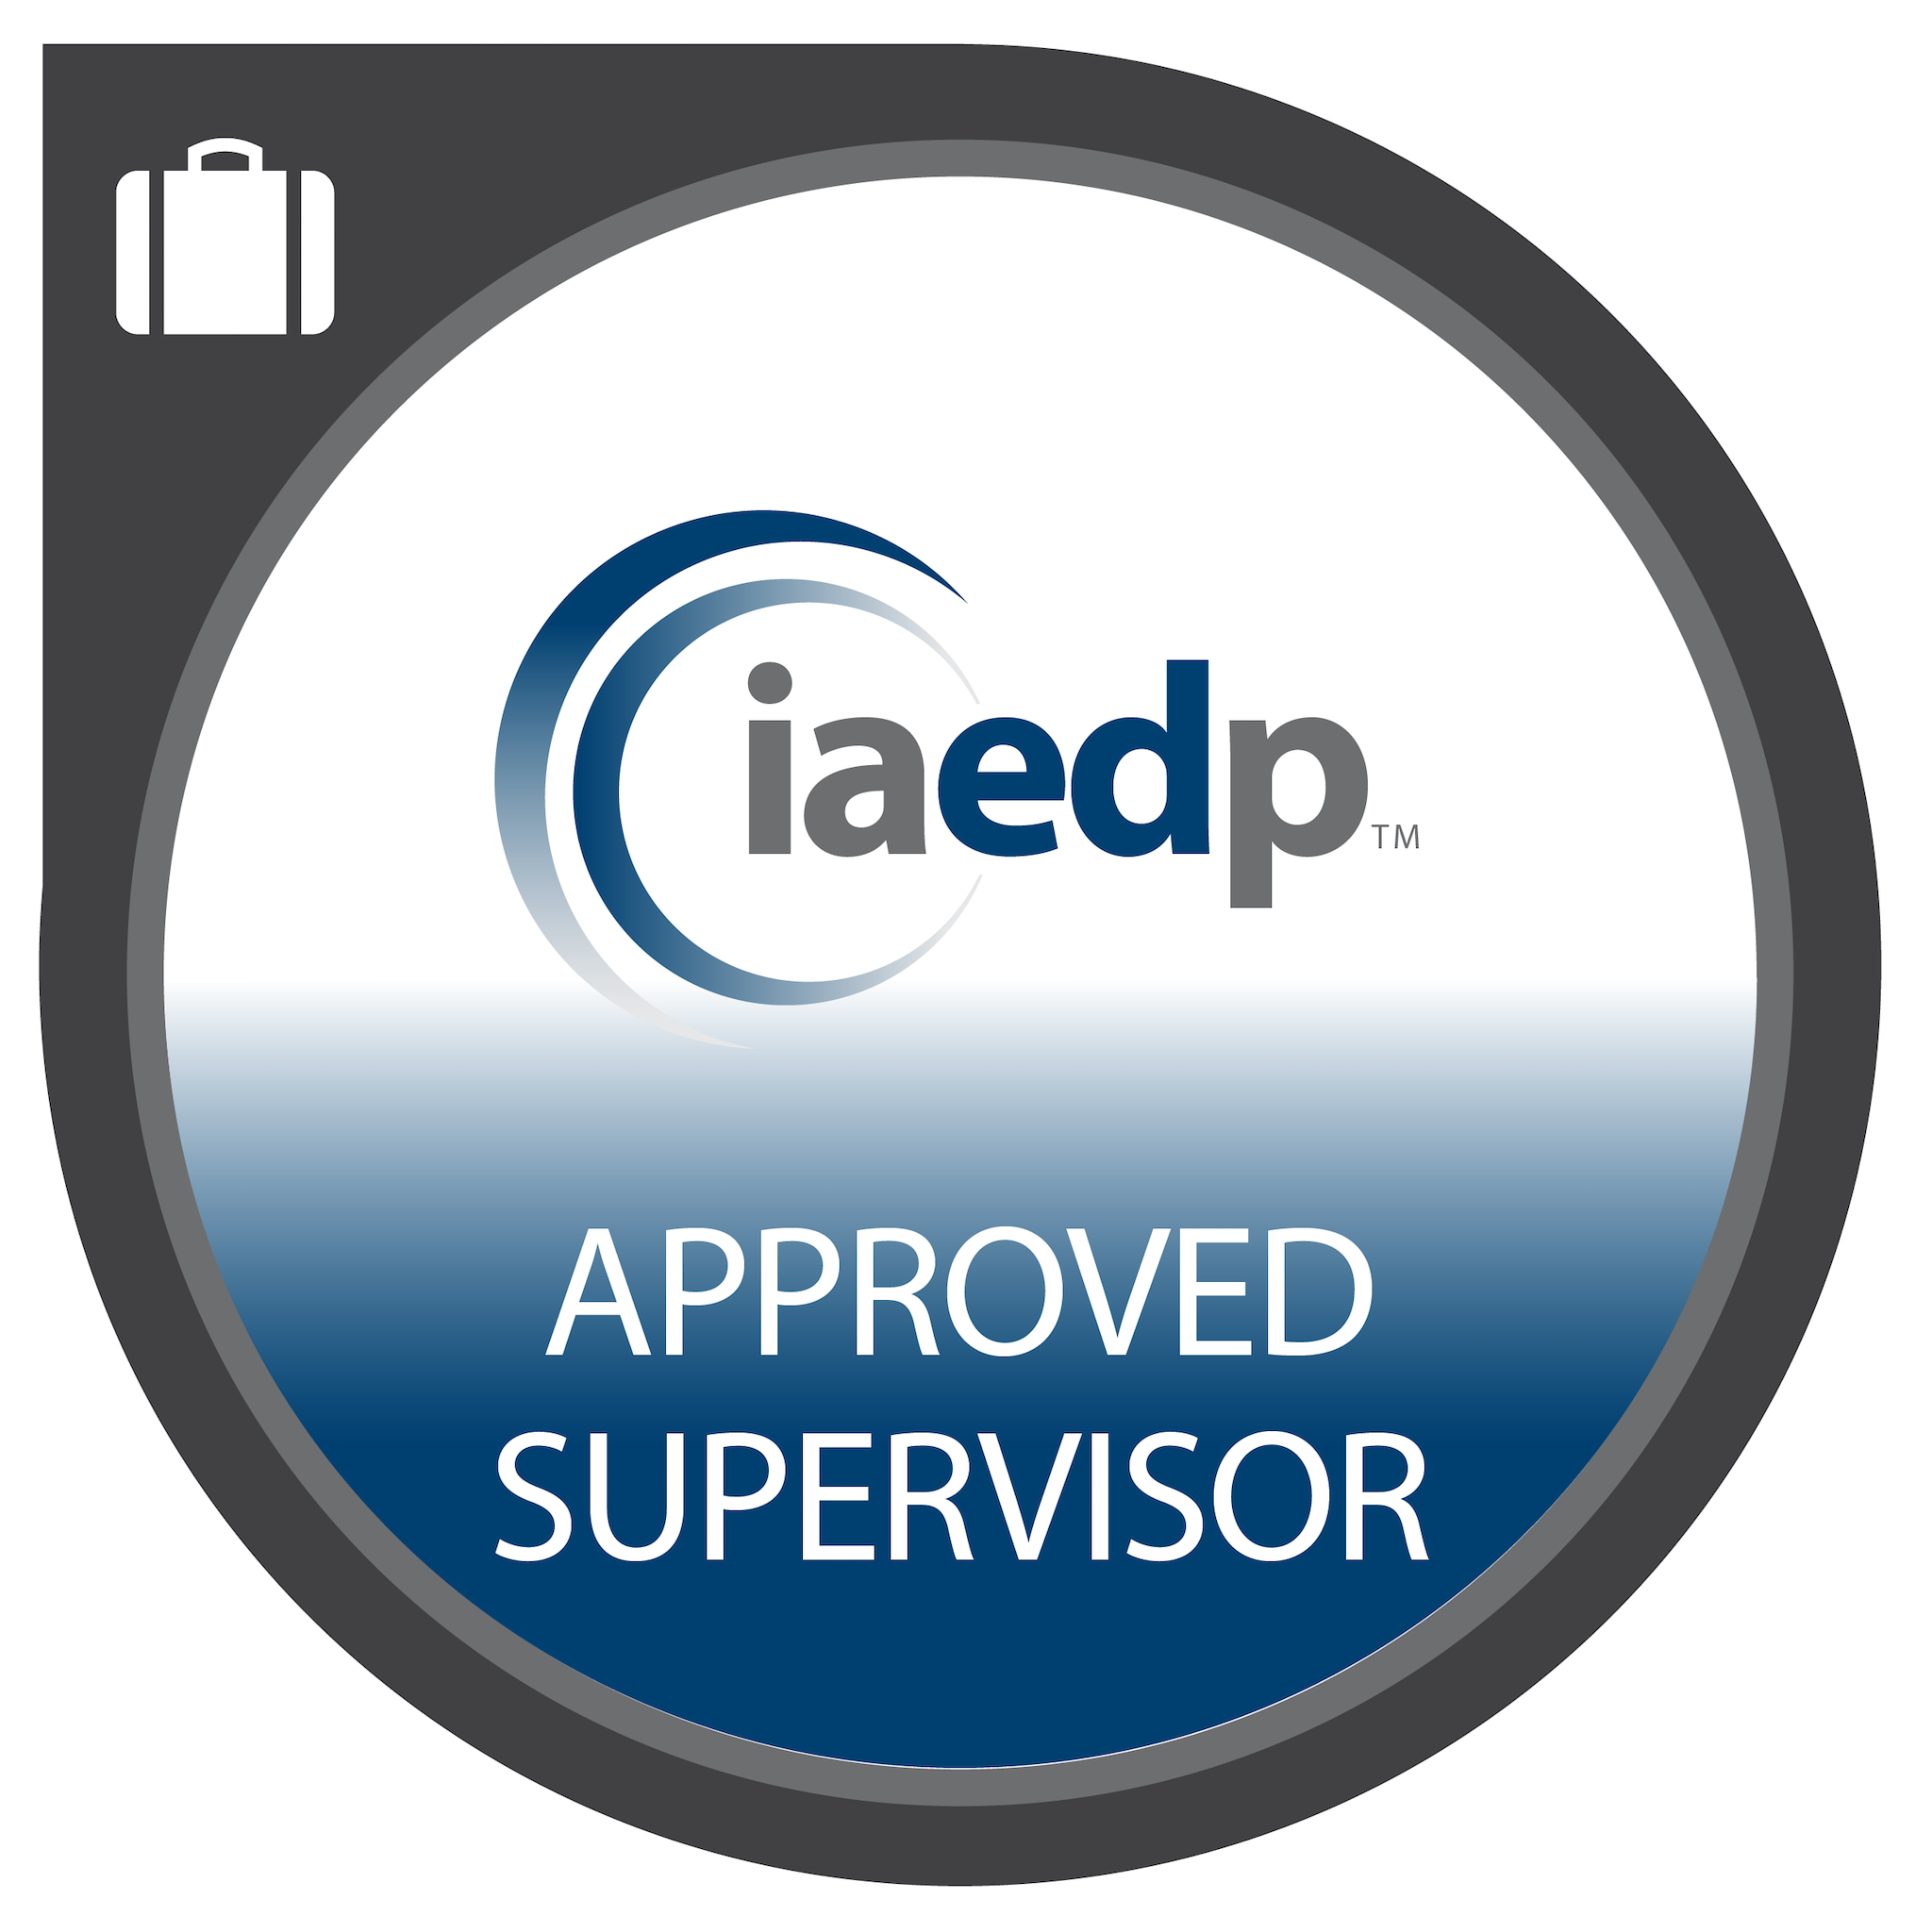 iaedp-Approved Supervisor